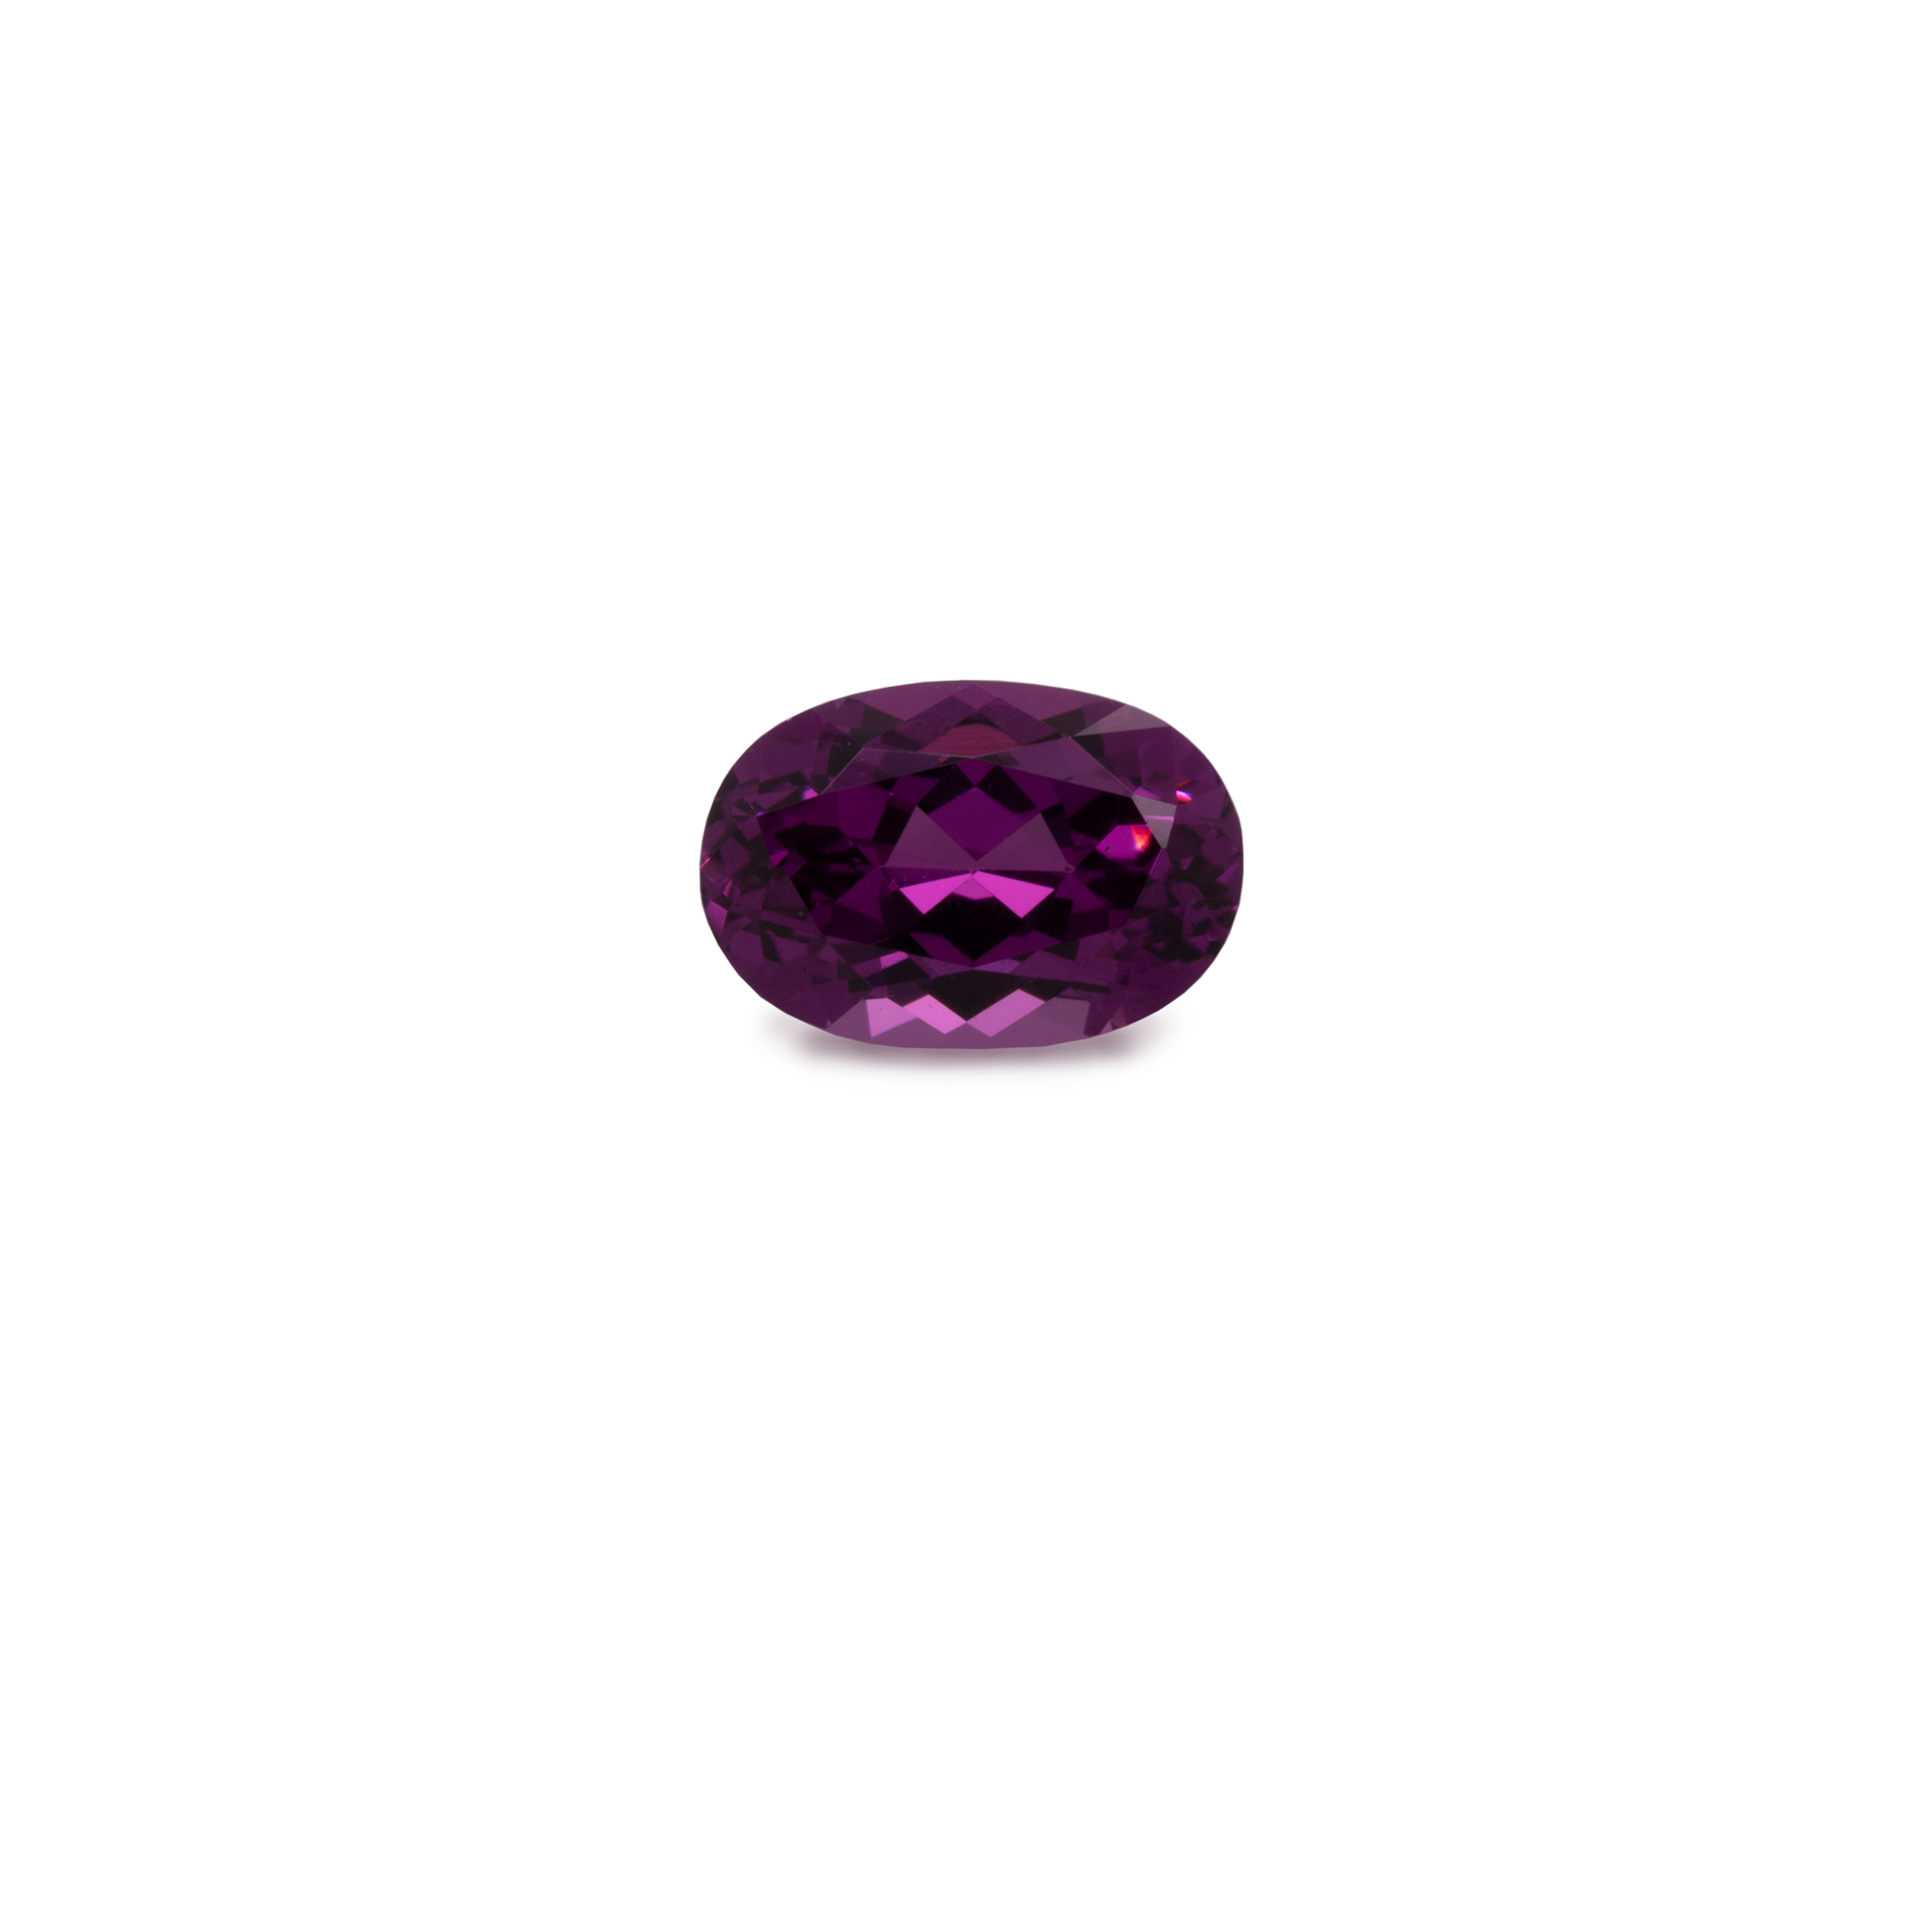 Royal Purple Garnet - lila, oval, 6x4 mm, 0,5-0,6 cts, Nr. RP30001